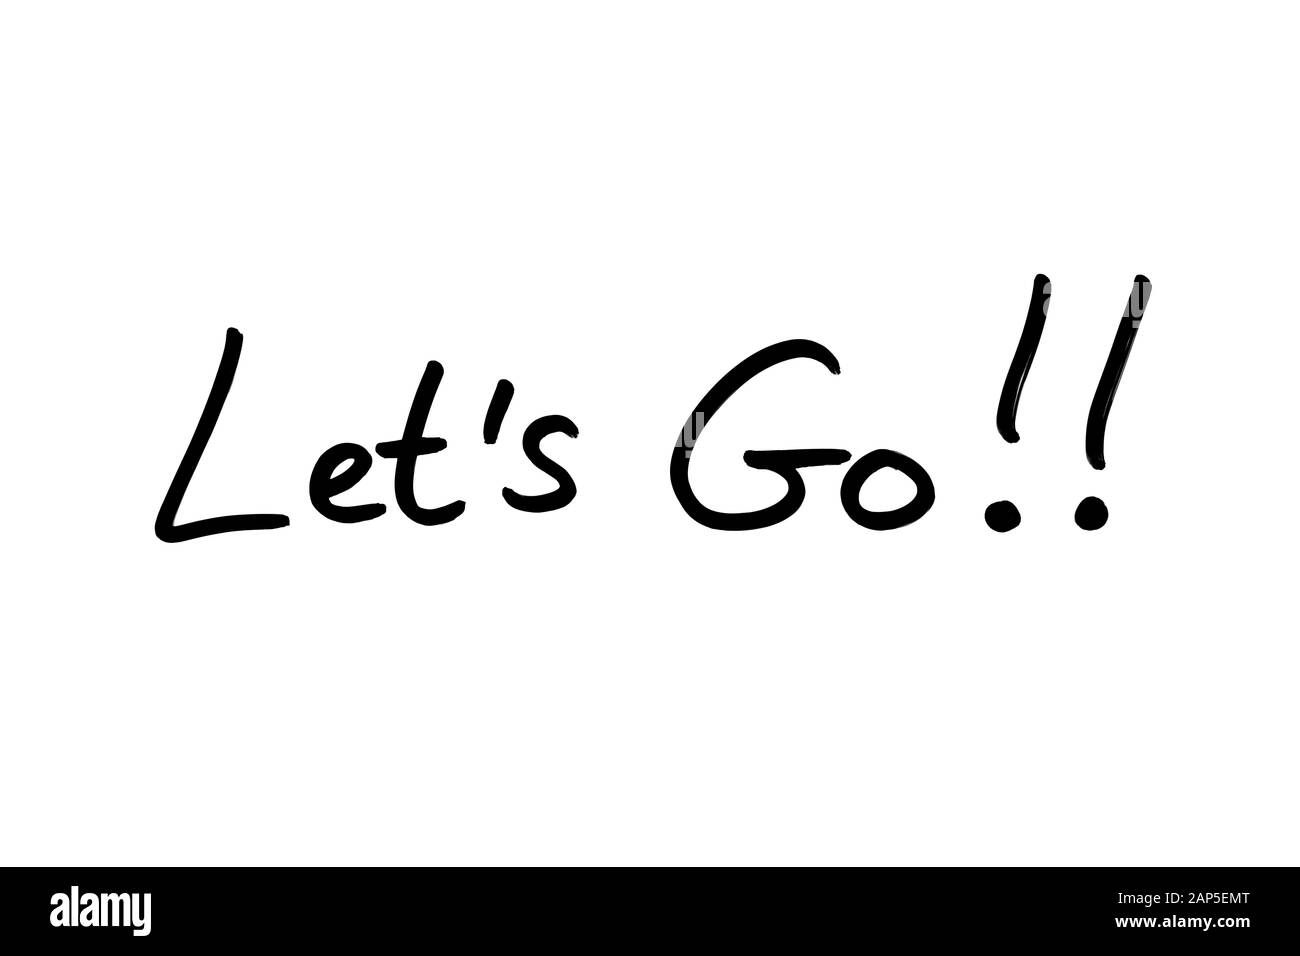 Lets Go! handwritten on a white background. Stock Photo